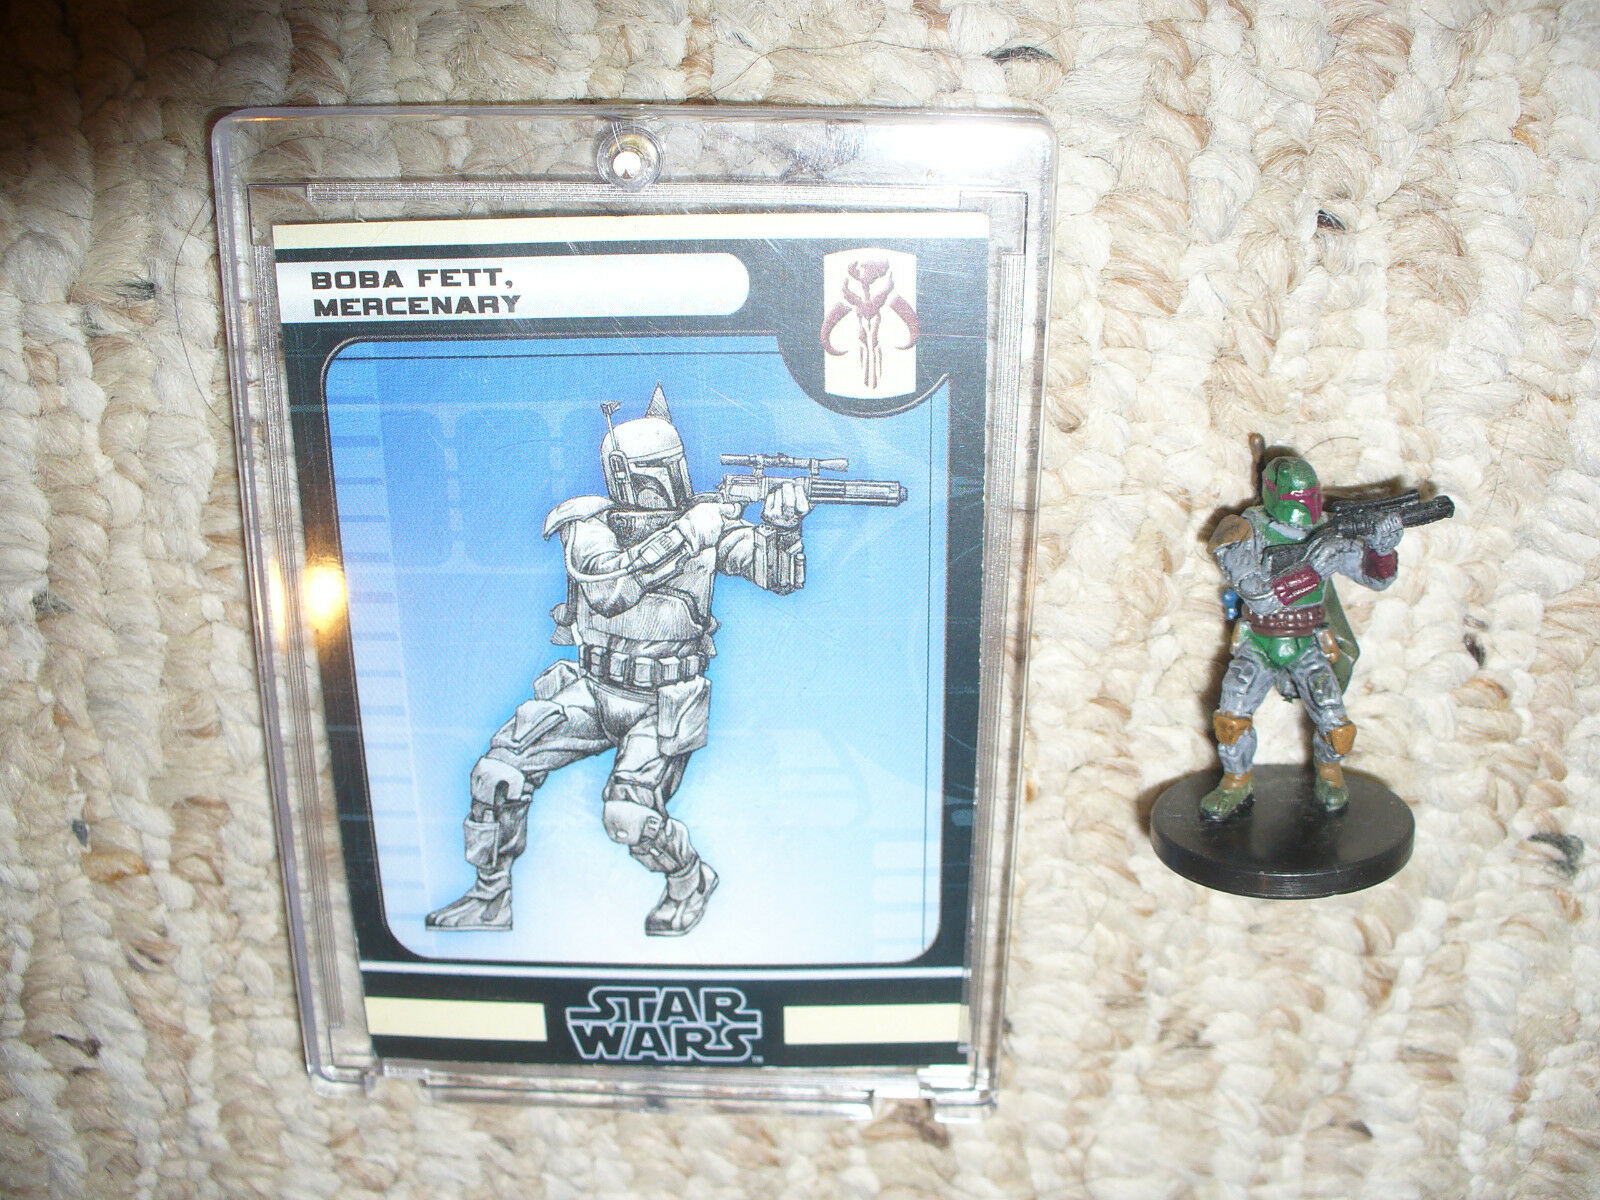 Star Wars Miniatures Game Piece & Card, Boba Fett Mercenary   47 / 60  Fringe 58